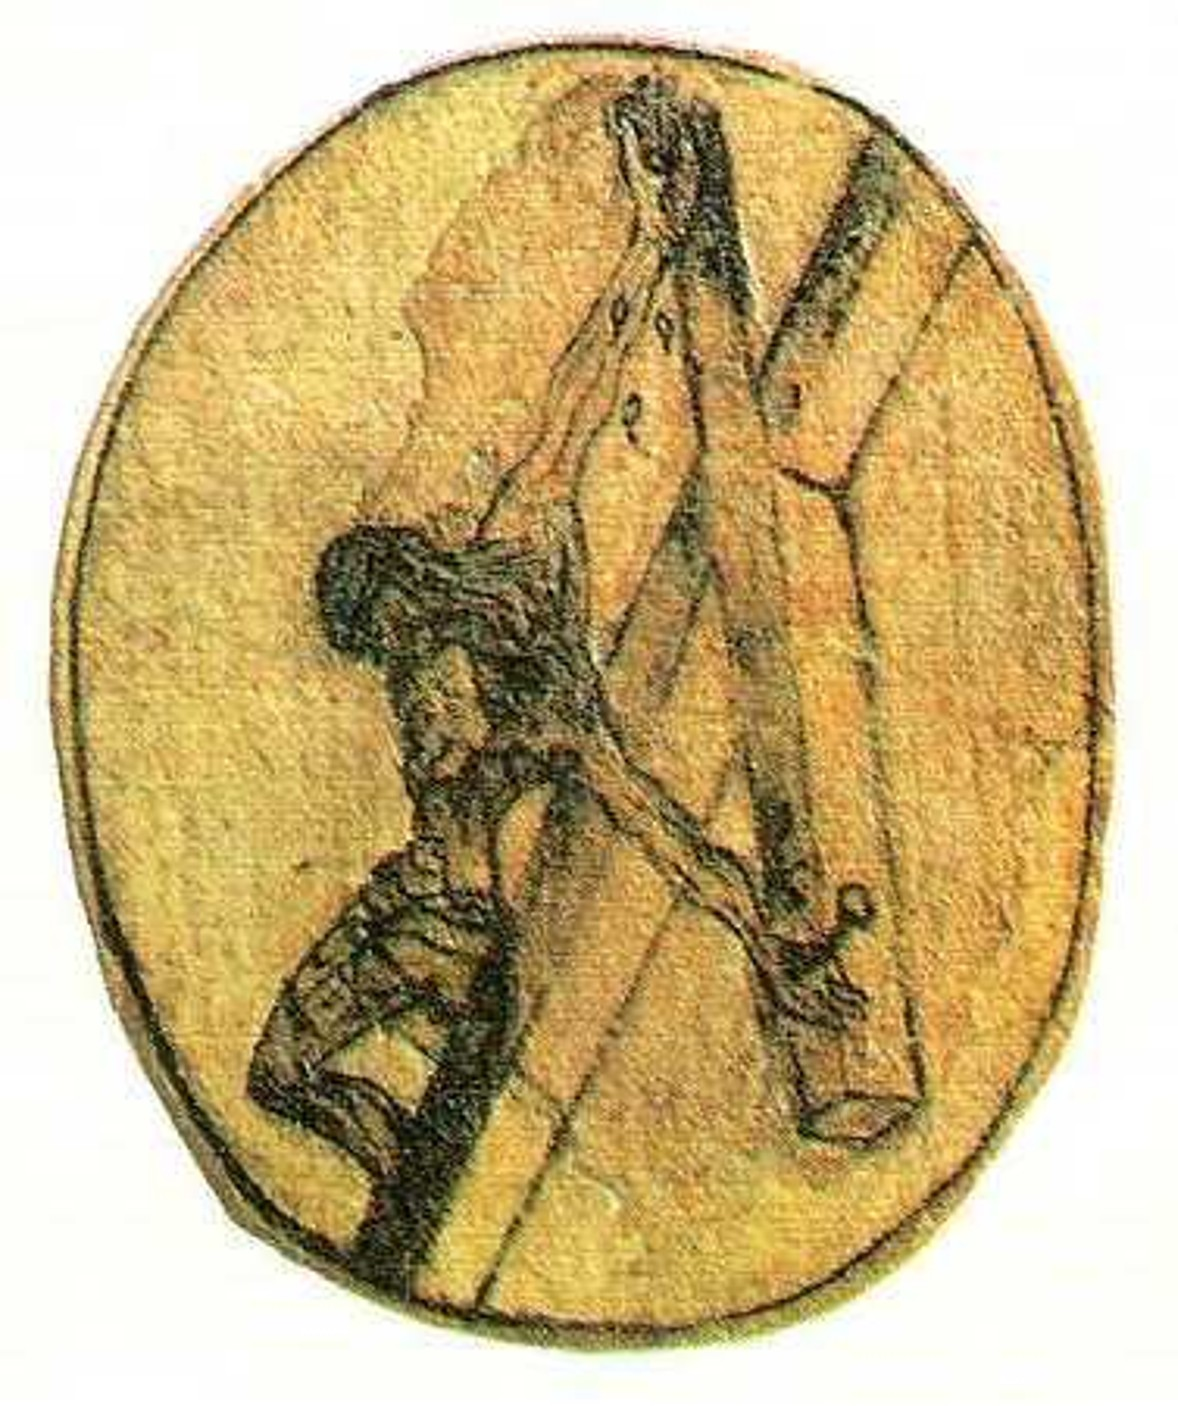 Drawing of St. John of the Cross